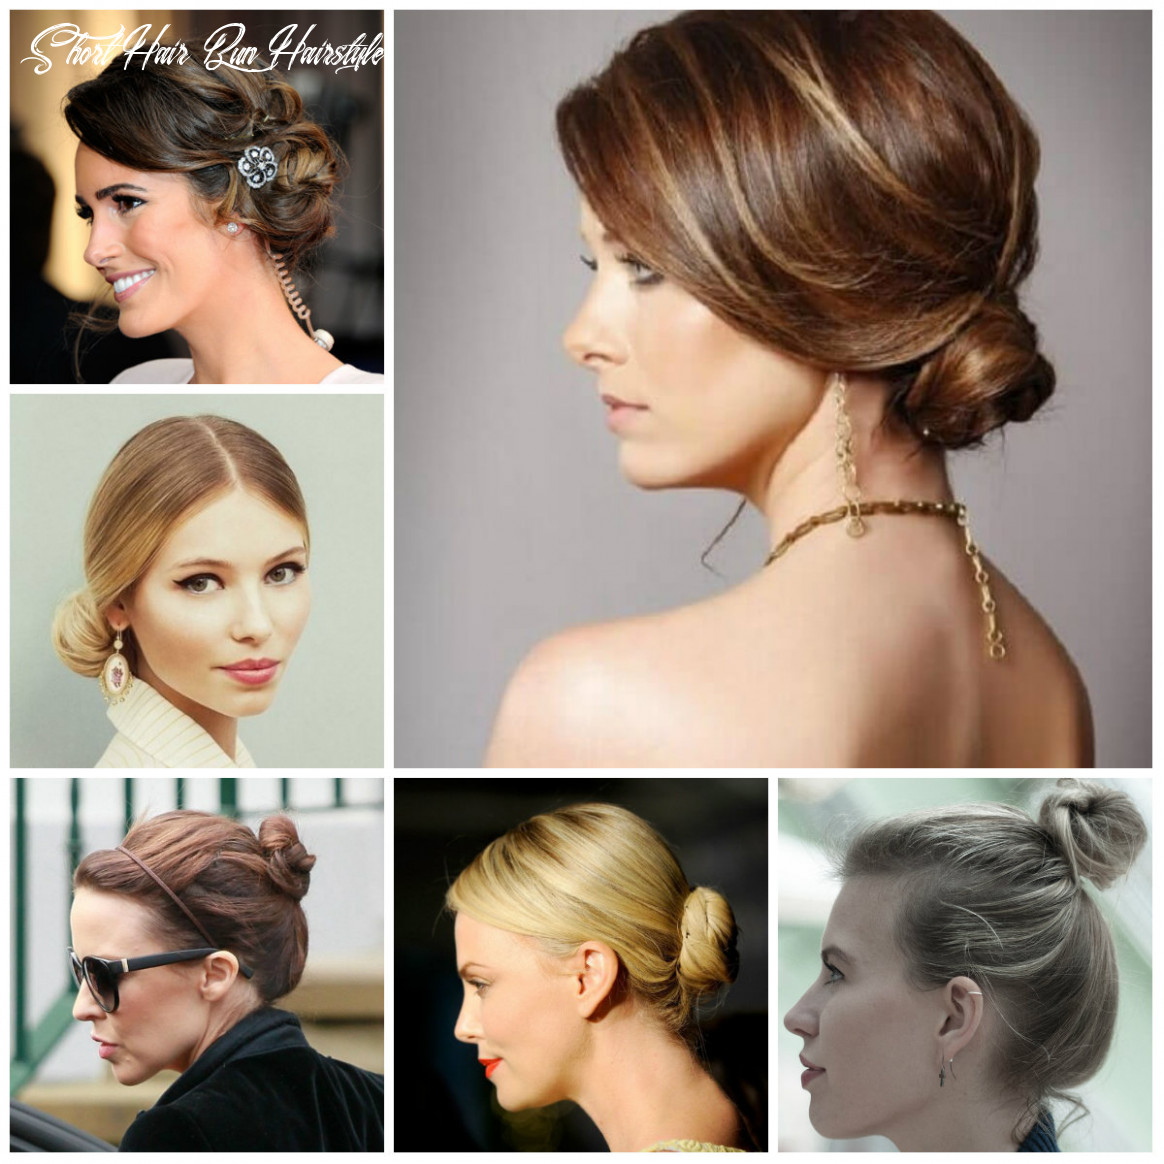 Bun hairstyles for short hair 9 | 9 haircuts, hairstyles and